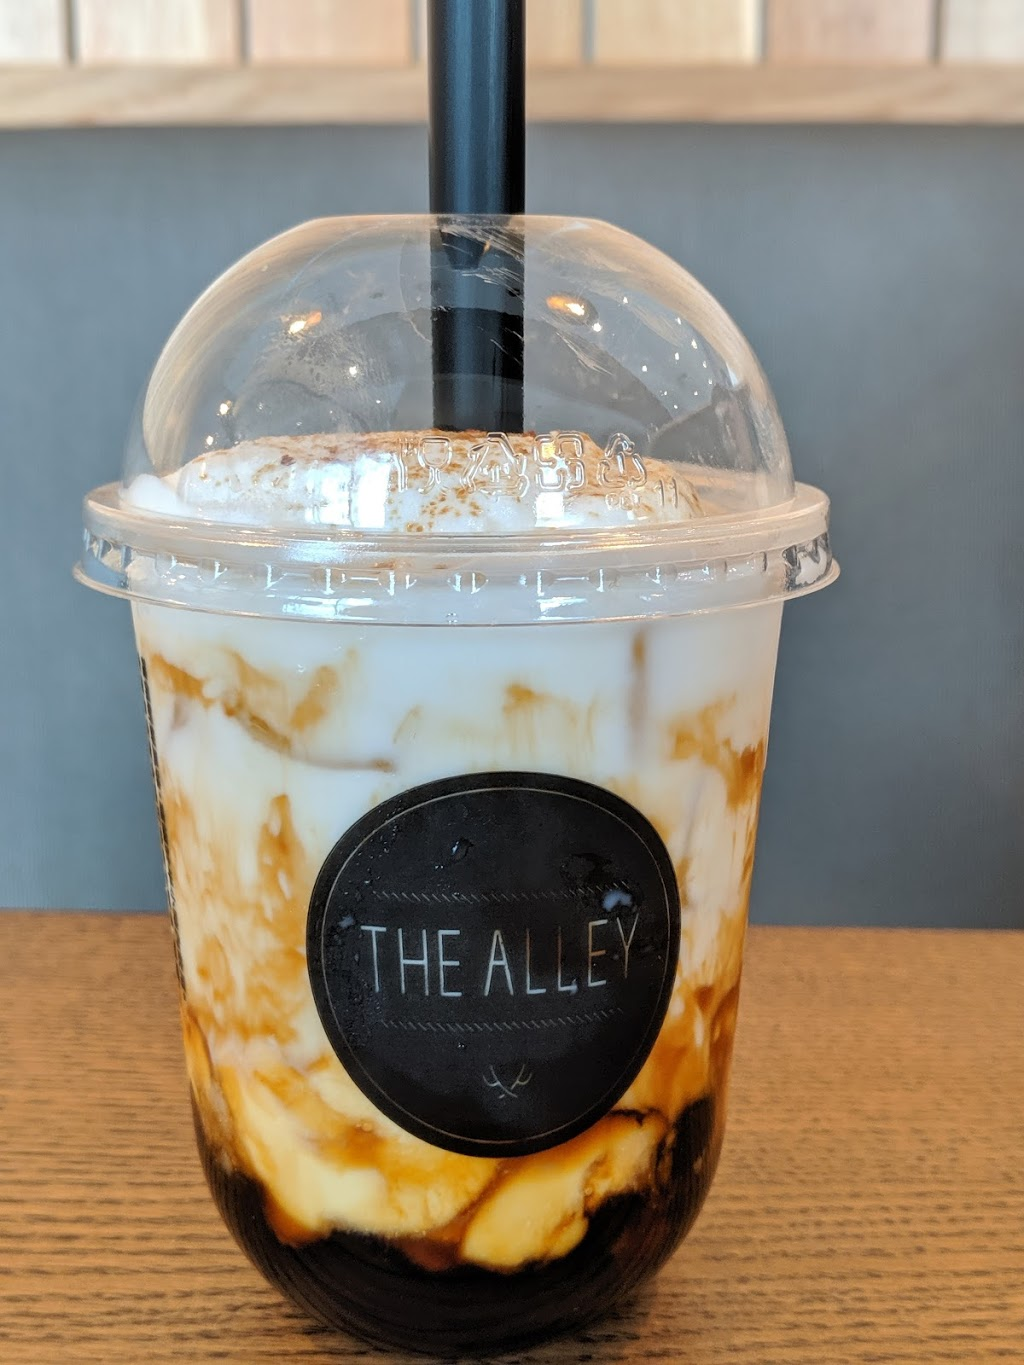 The Alley | cafe | 382 Yonge St Unit 1, Toronto, ON M5B 1S9, Canada | 4165972200 OR +1 416-597-2200